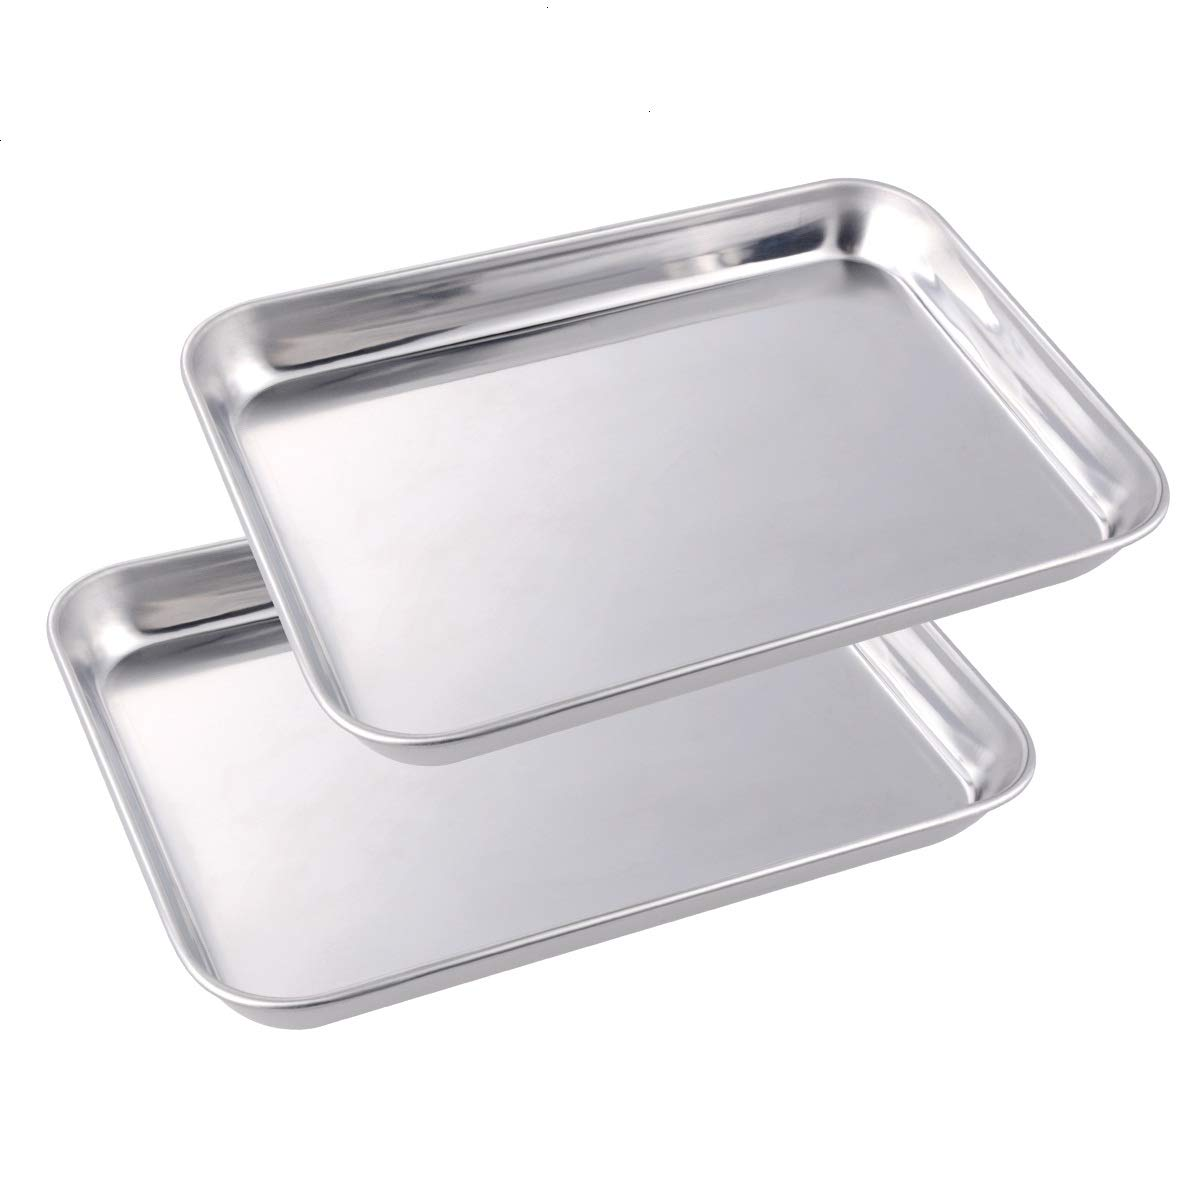 Baking Sheet&Cookie sheet Set 2,Cooking Stainless Steel Pan ,10x7.8x1 Inch Non Toxic & Healthy, Mirror Finish & Rust Free, Easy Clean & Dishwasher Safe